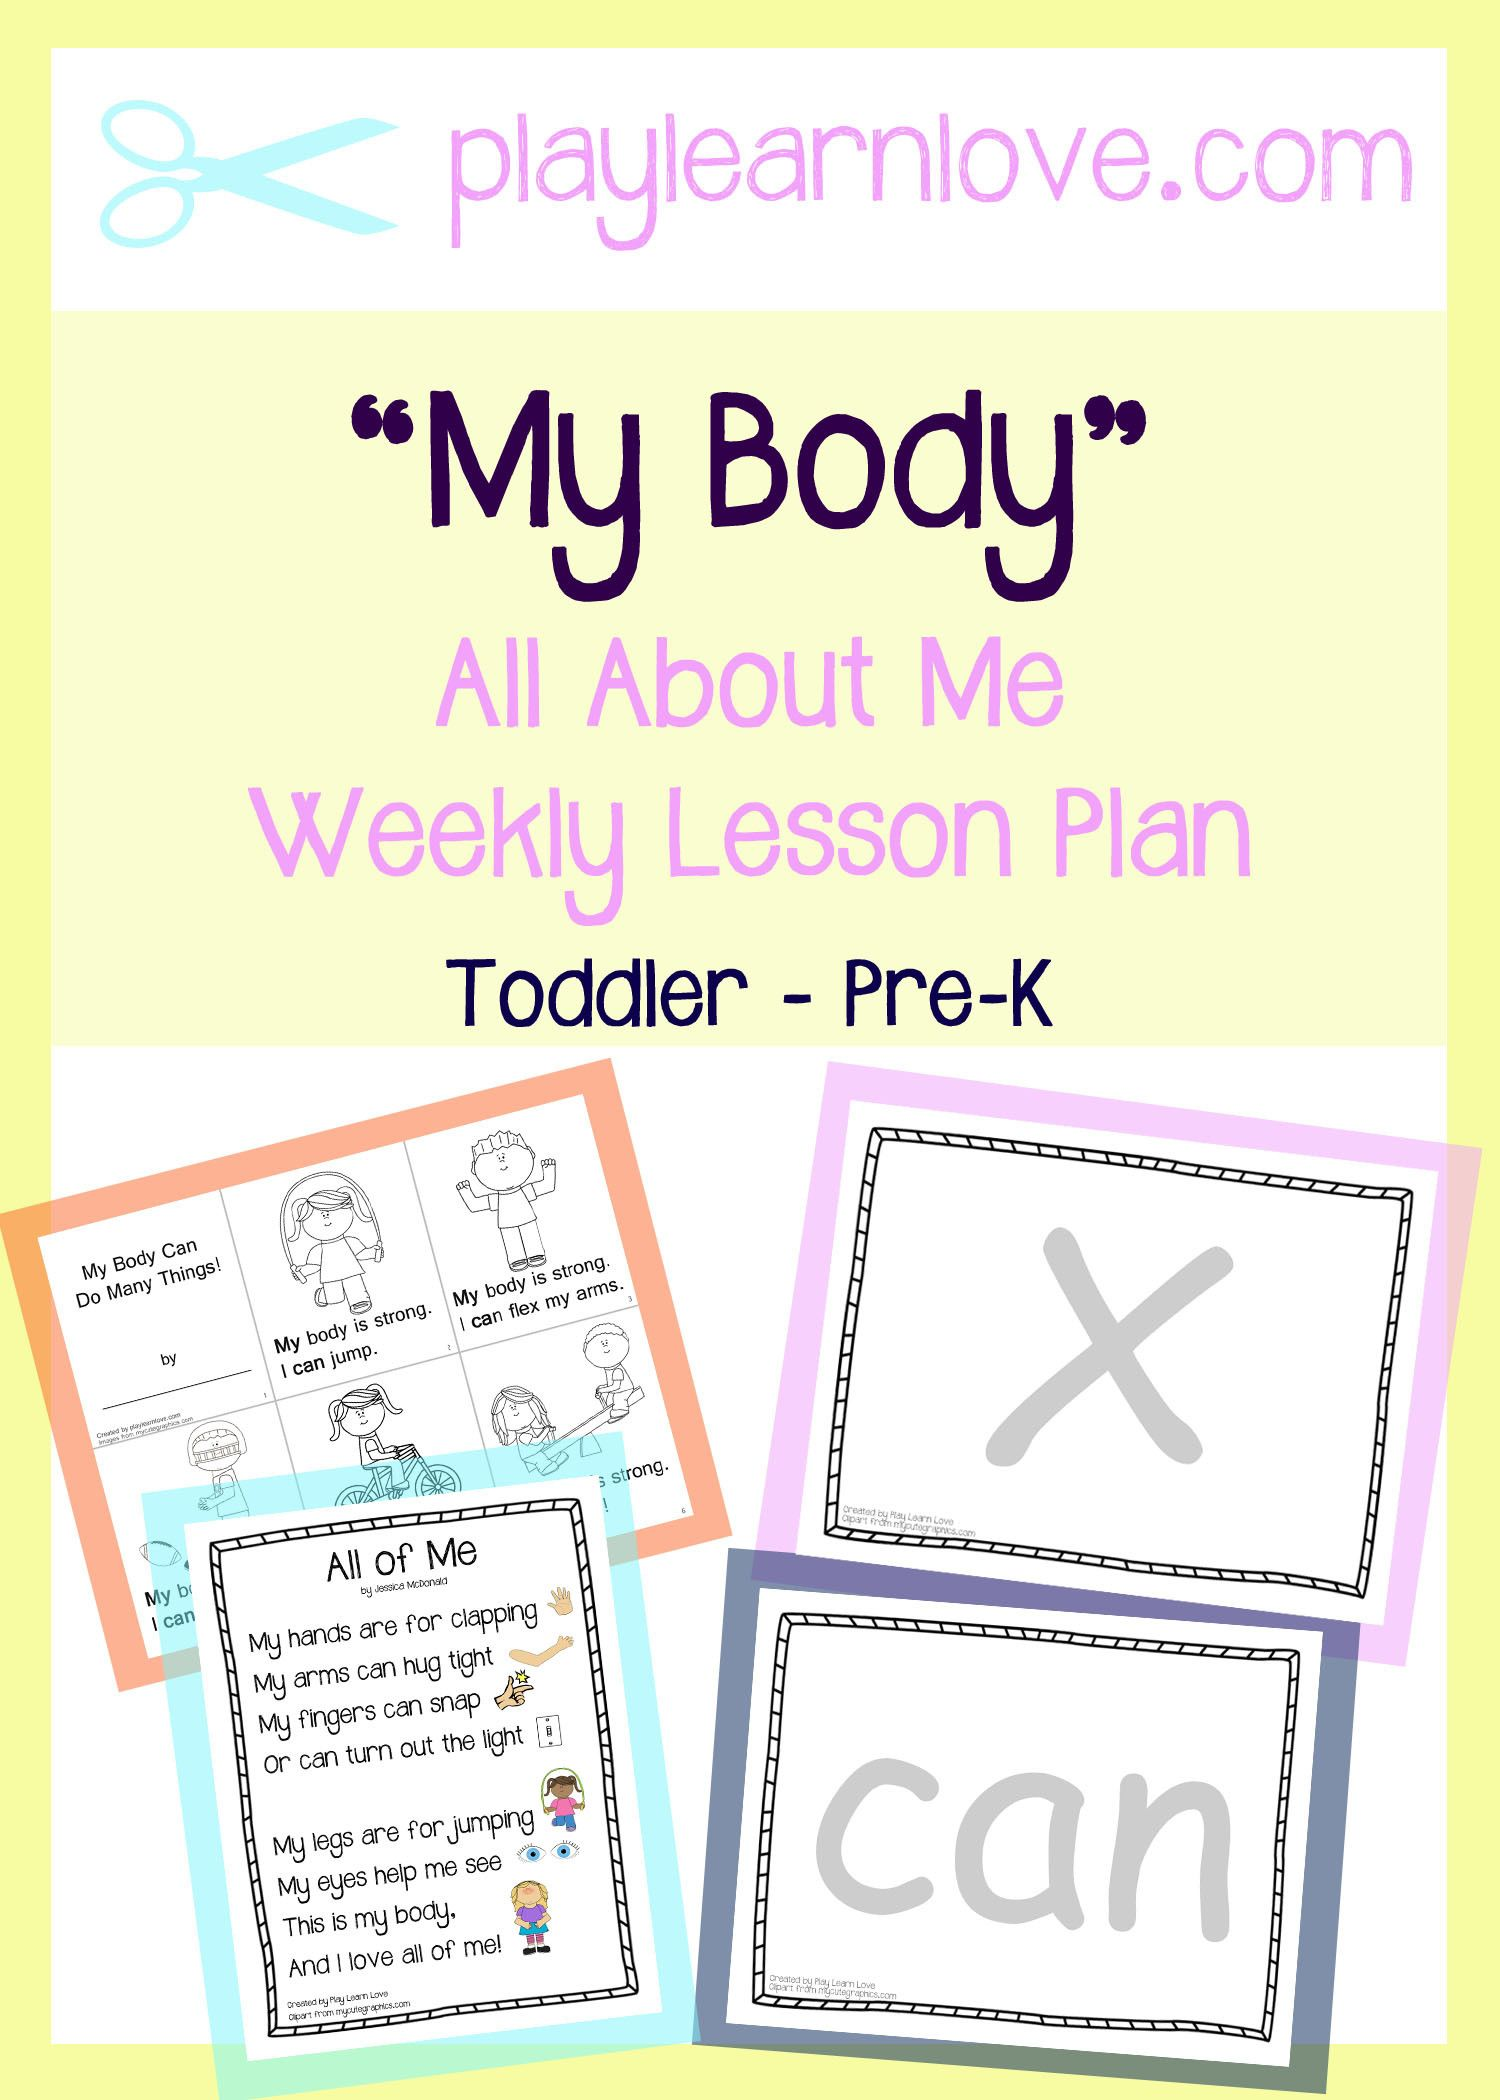 All About Me My Body Lesson Plan From Play Learn Love Kid